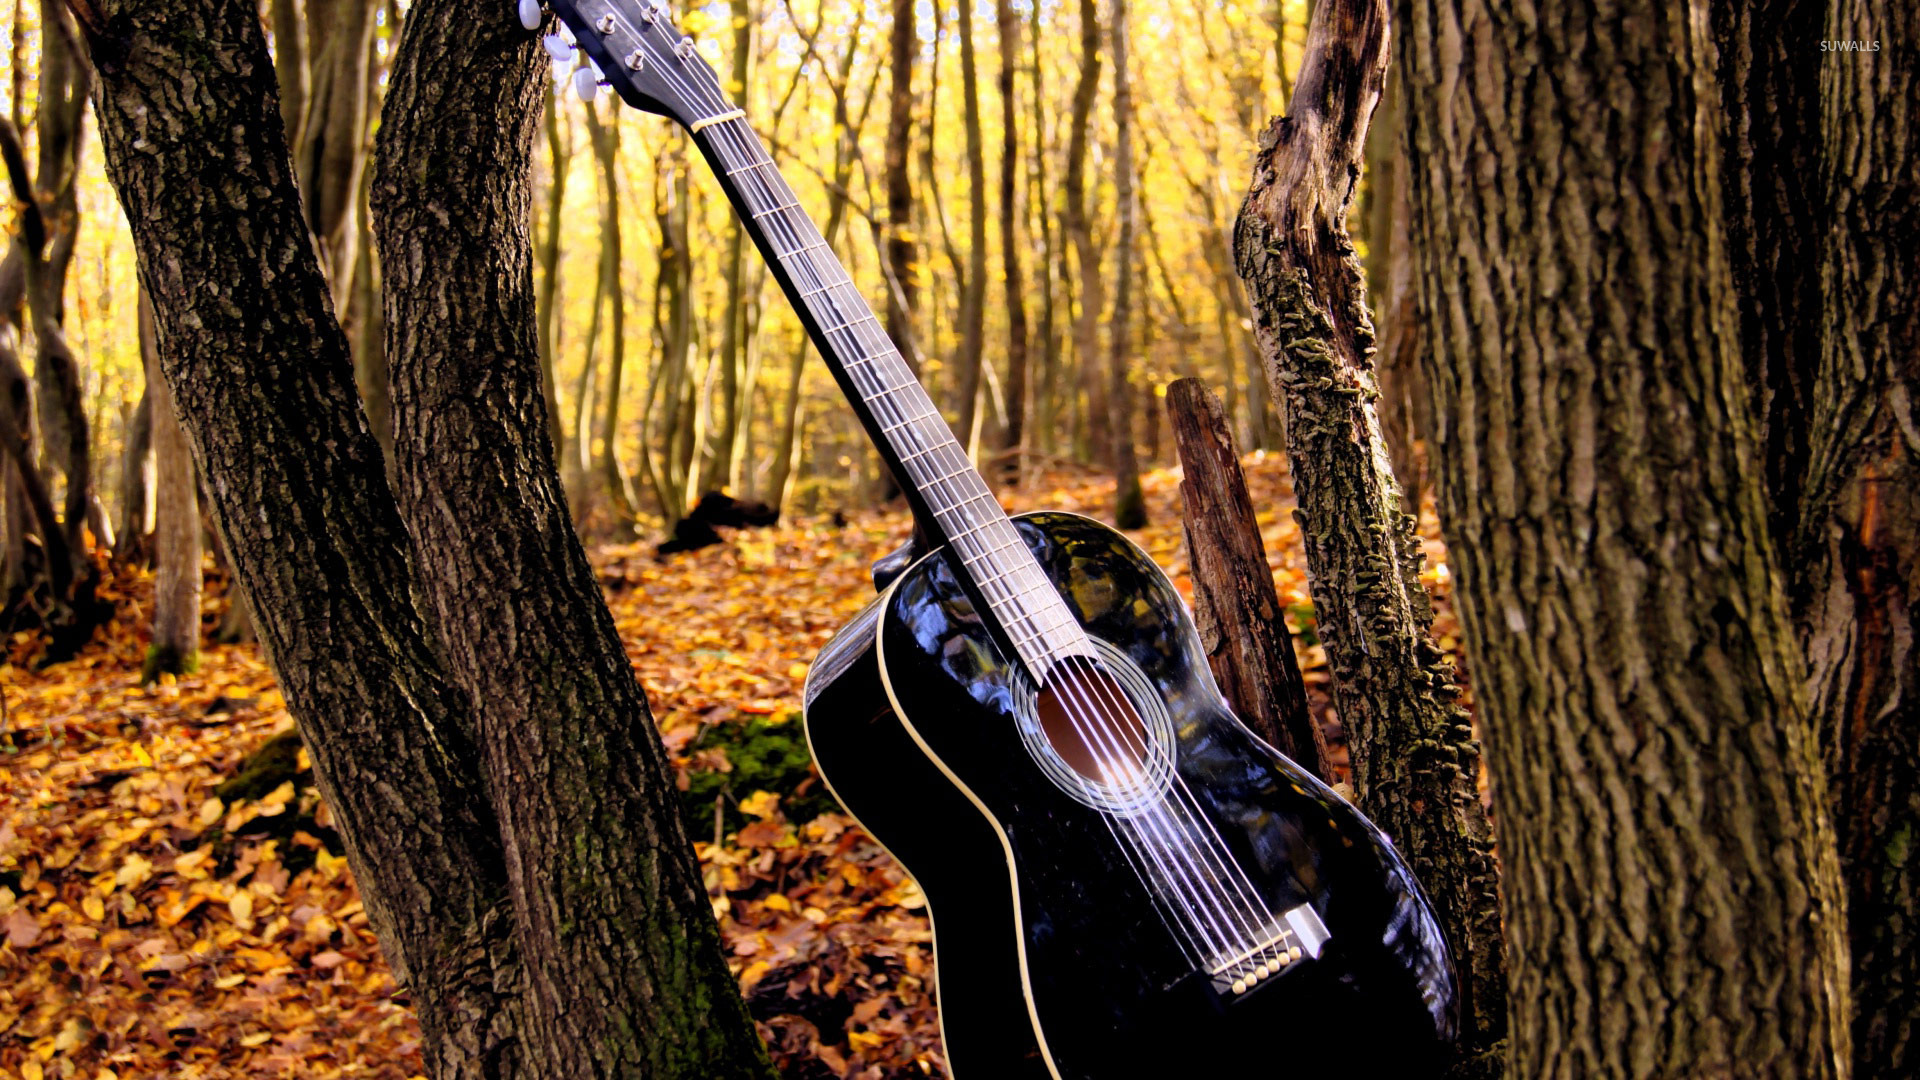 Great Wallpaper Music Guitar - guitar-in-the-forest-19122-1920x1080  Gallery_639474.jpg